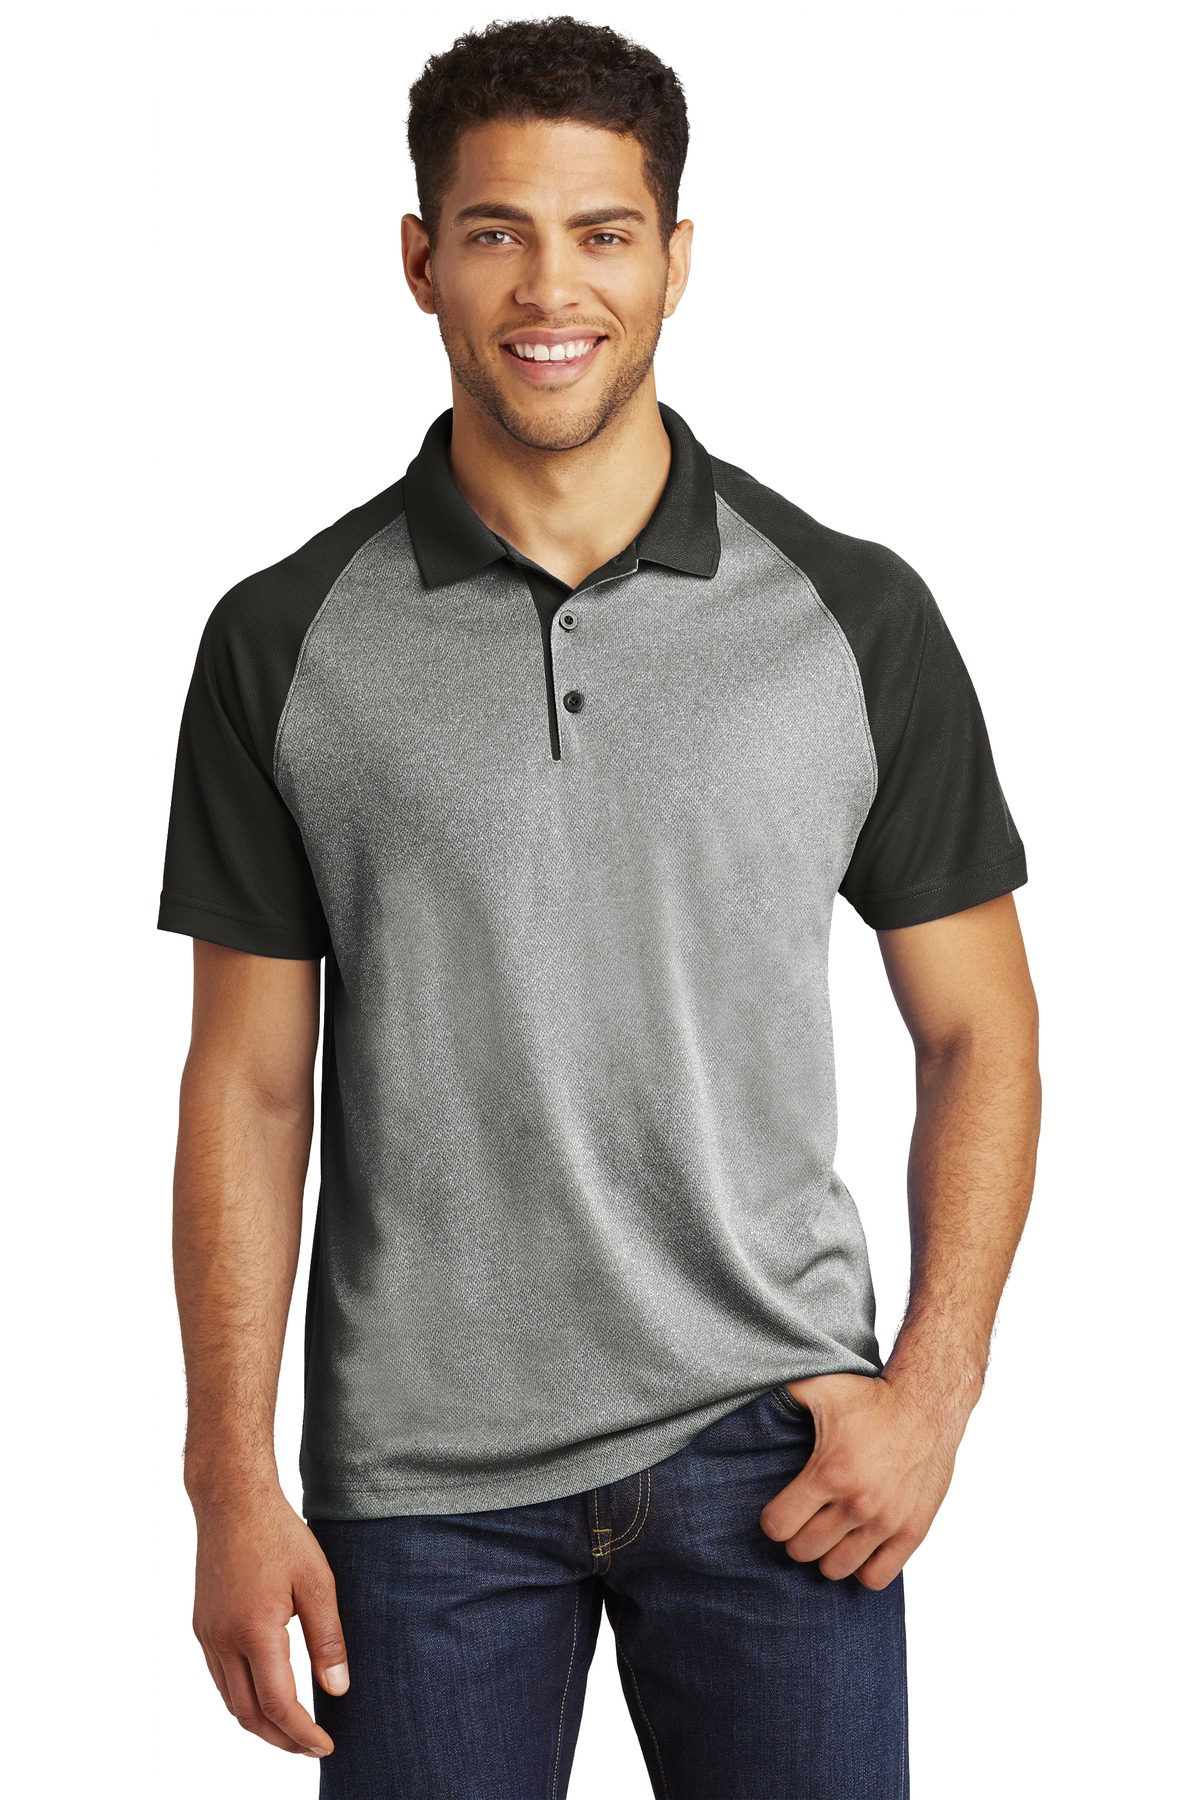 Sport-Tek  ®  PosiCharge  ®  RacerMesh  ®  Raglan Heather Block Polo. ST641 - Grey Heather/Black